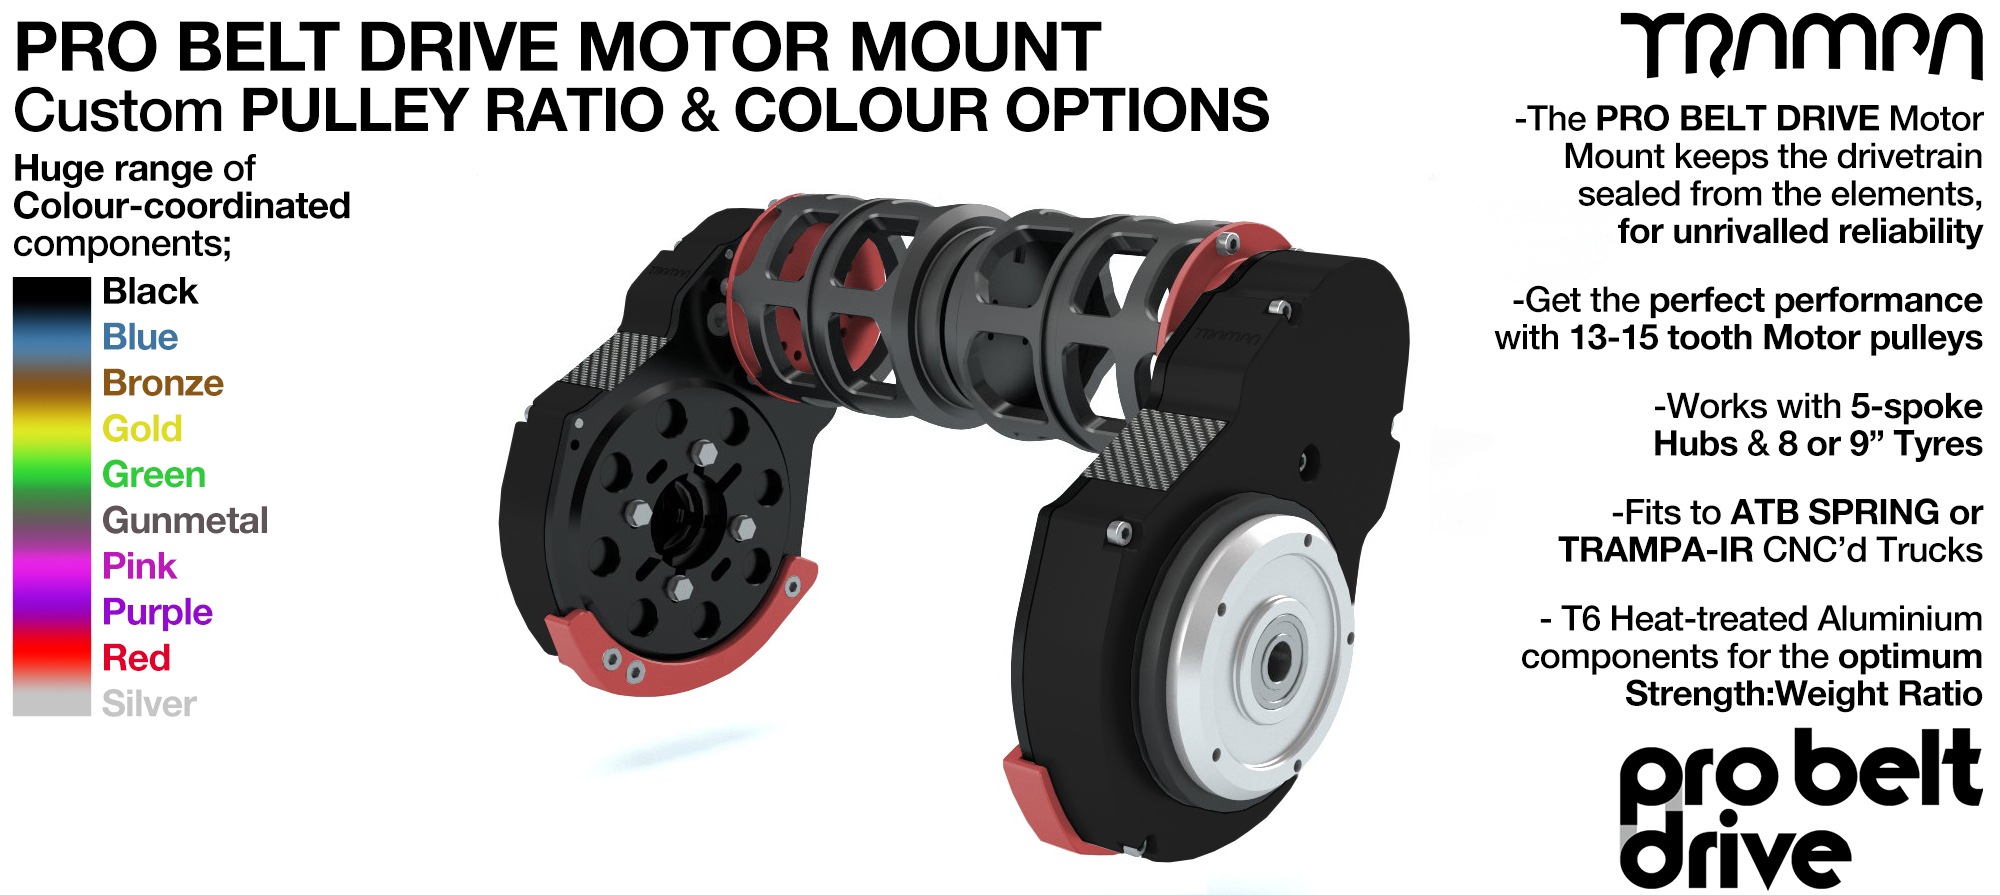 Mountainboard PRO Belt Drive TWIN Motor Mounts with Motor Protection housings - NO Motors